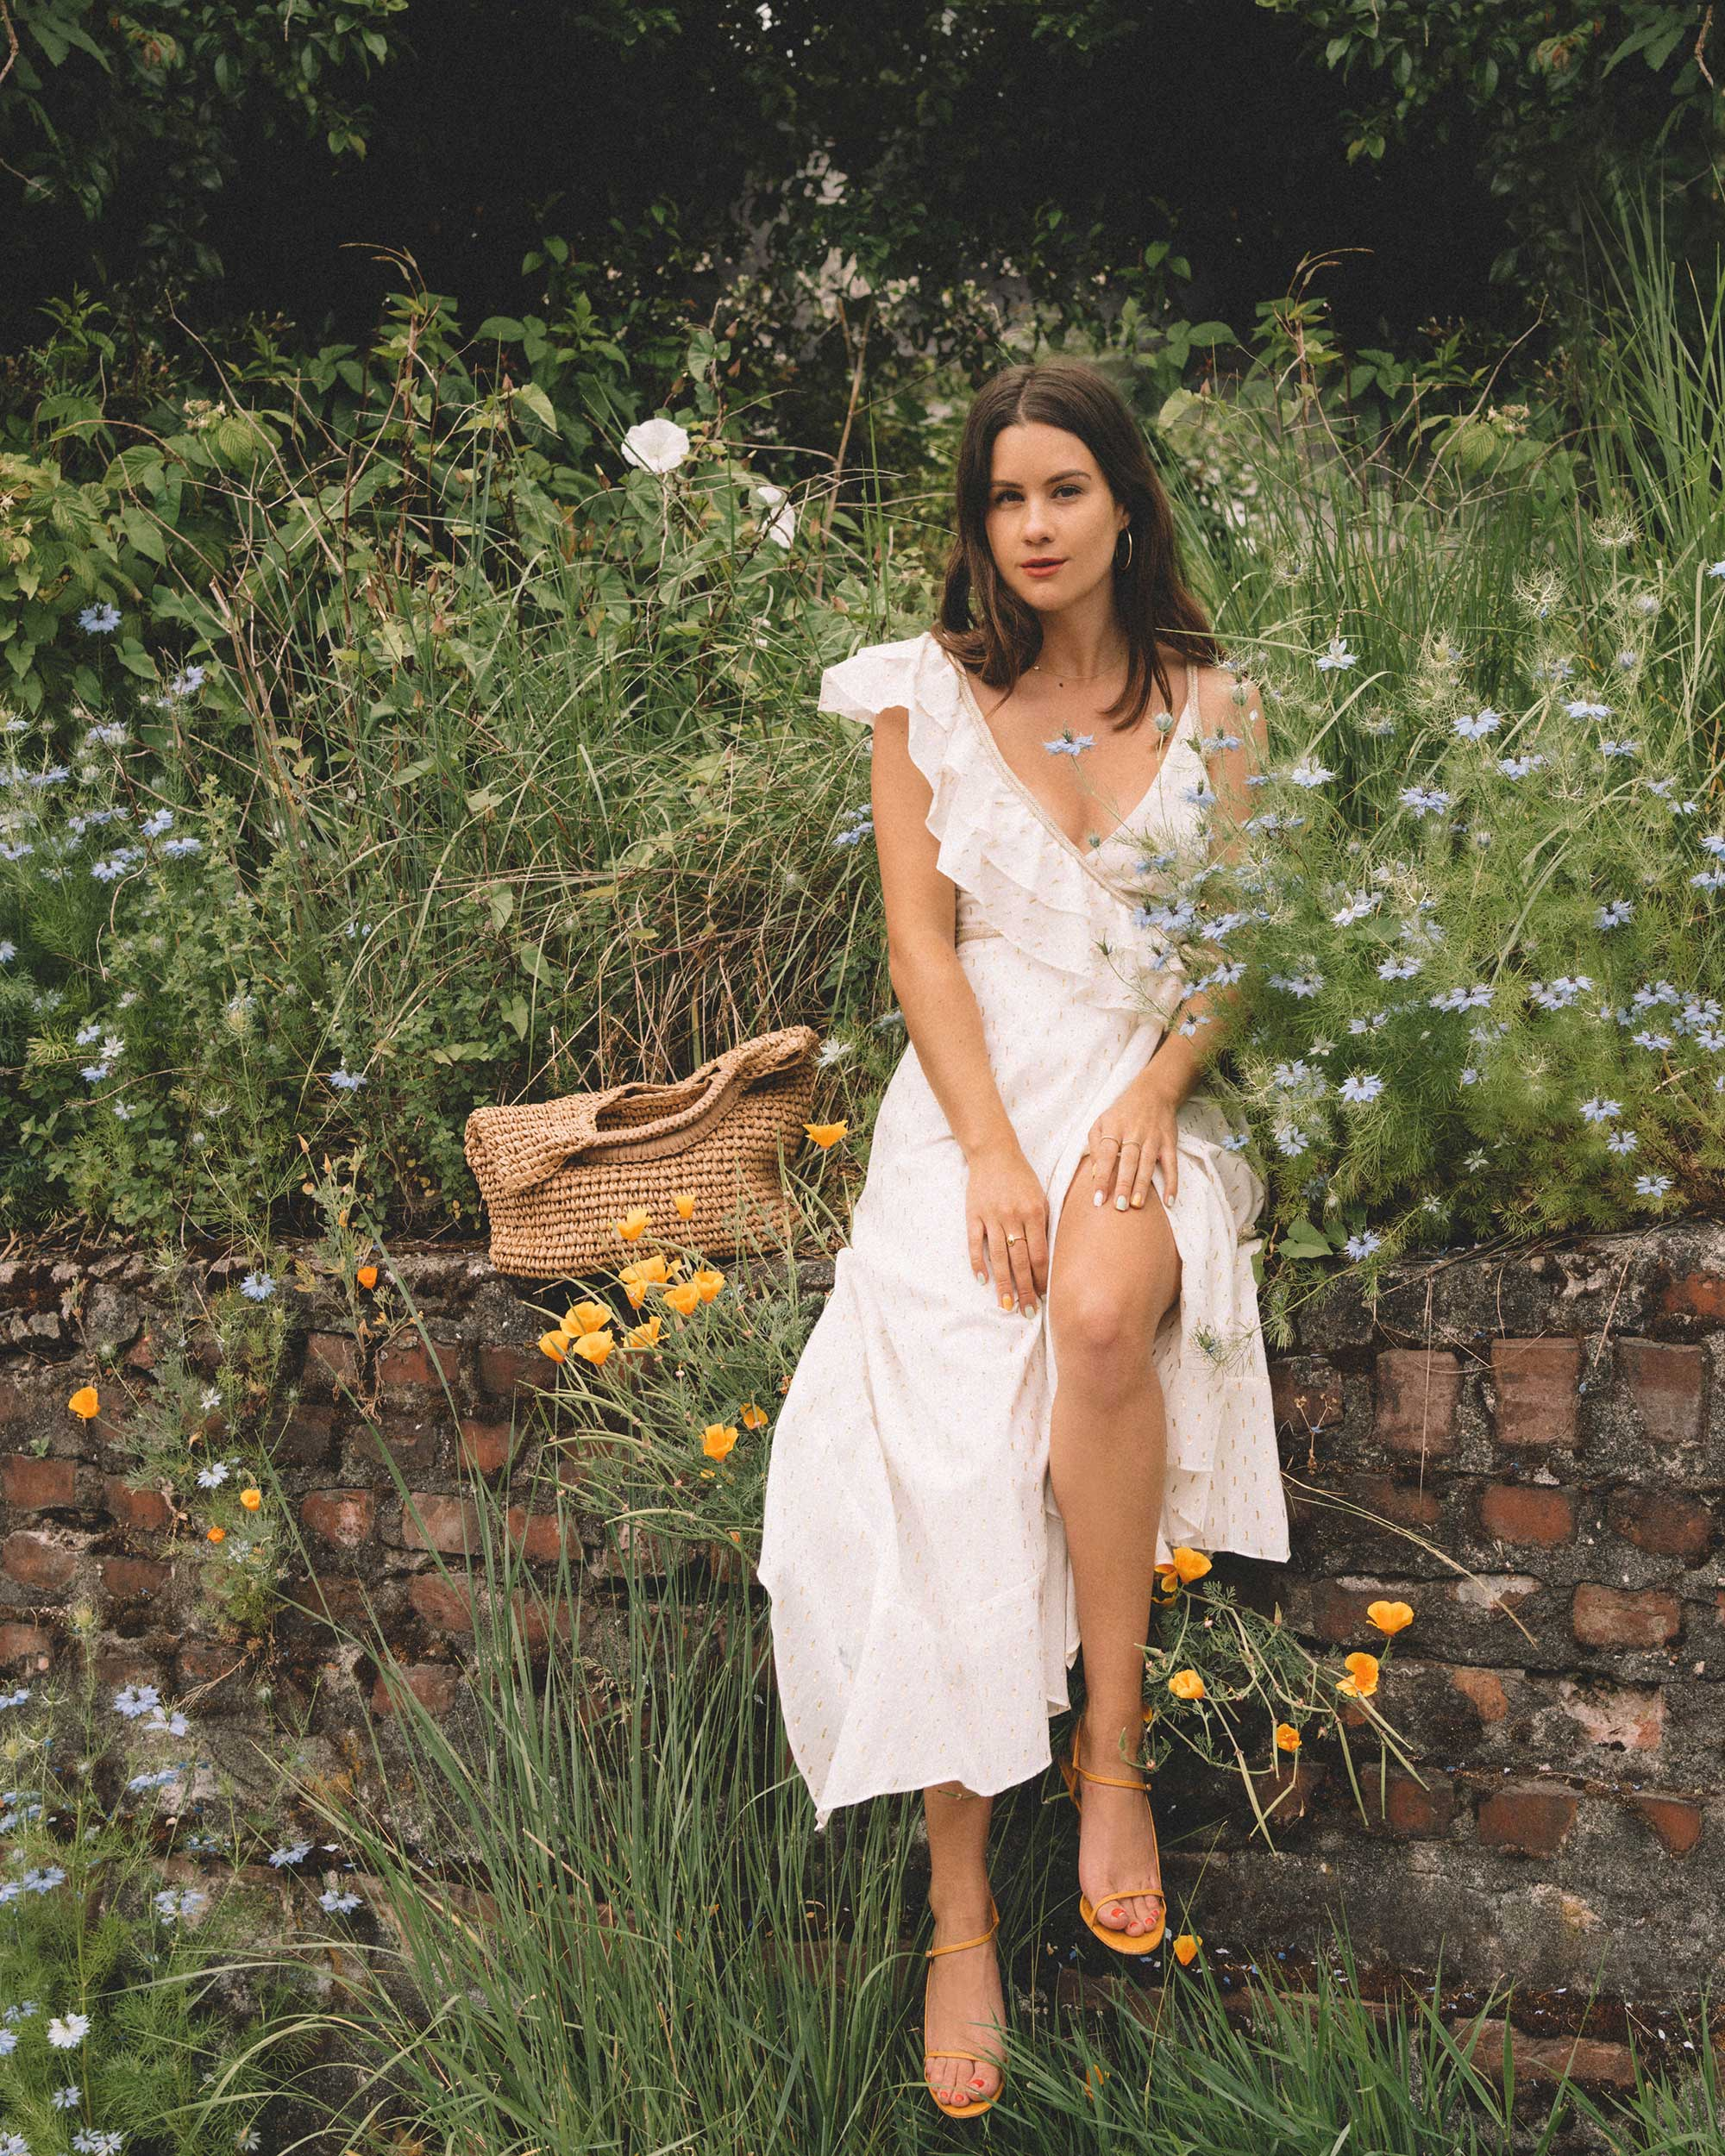 Sarah Butler of Sarah Styles Seattle wears BCBGMAXAZRIA White Asymmetric Midi Wrap Dress for the perfect summer outfit | @sarahchristine -13.jpg